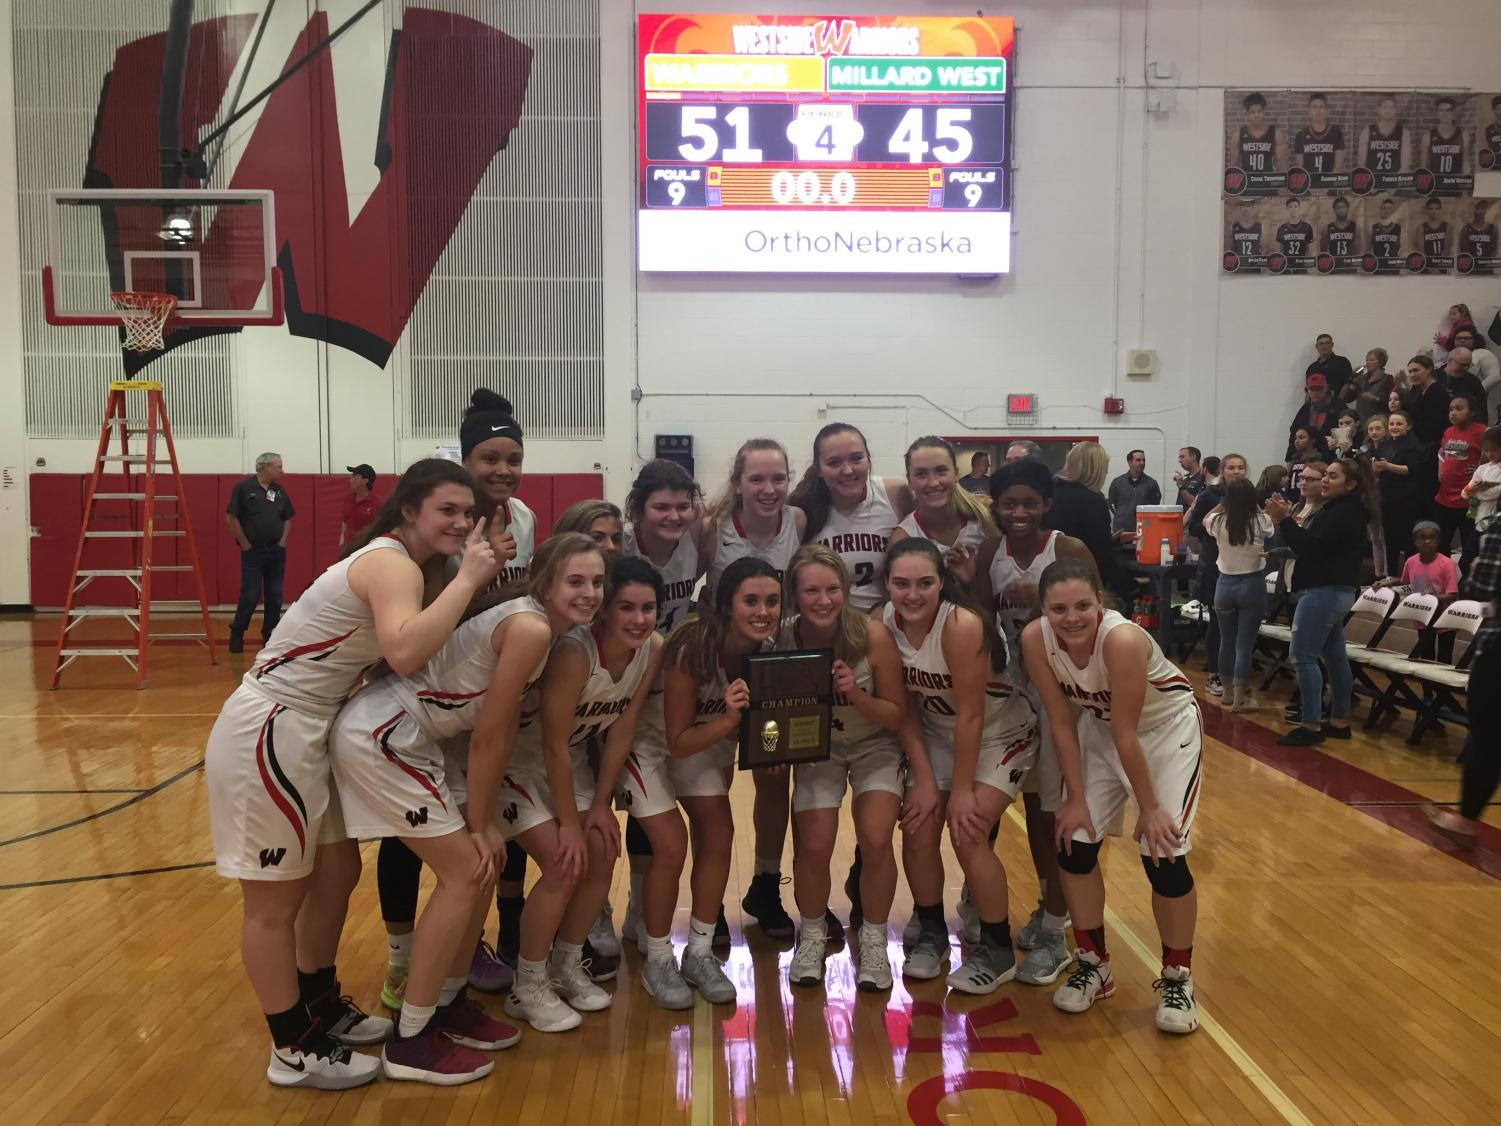 The girls received a plaque after winning the district A-5 title.